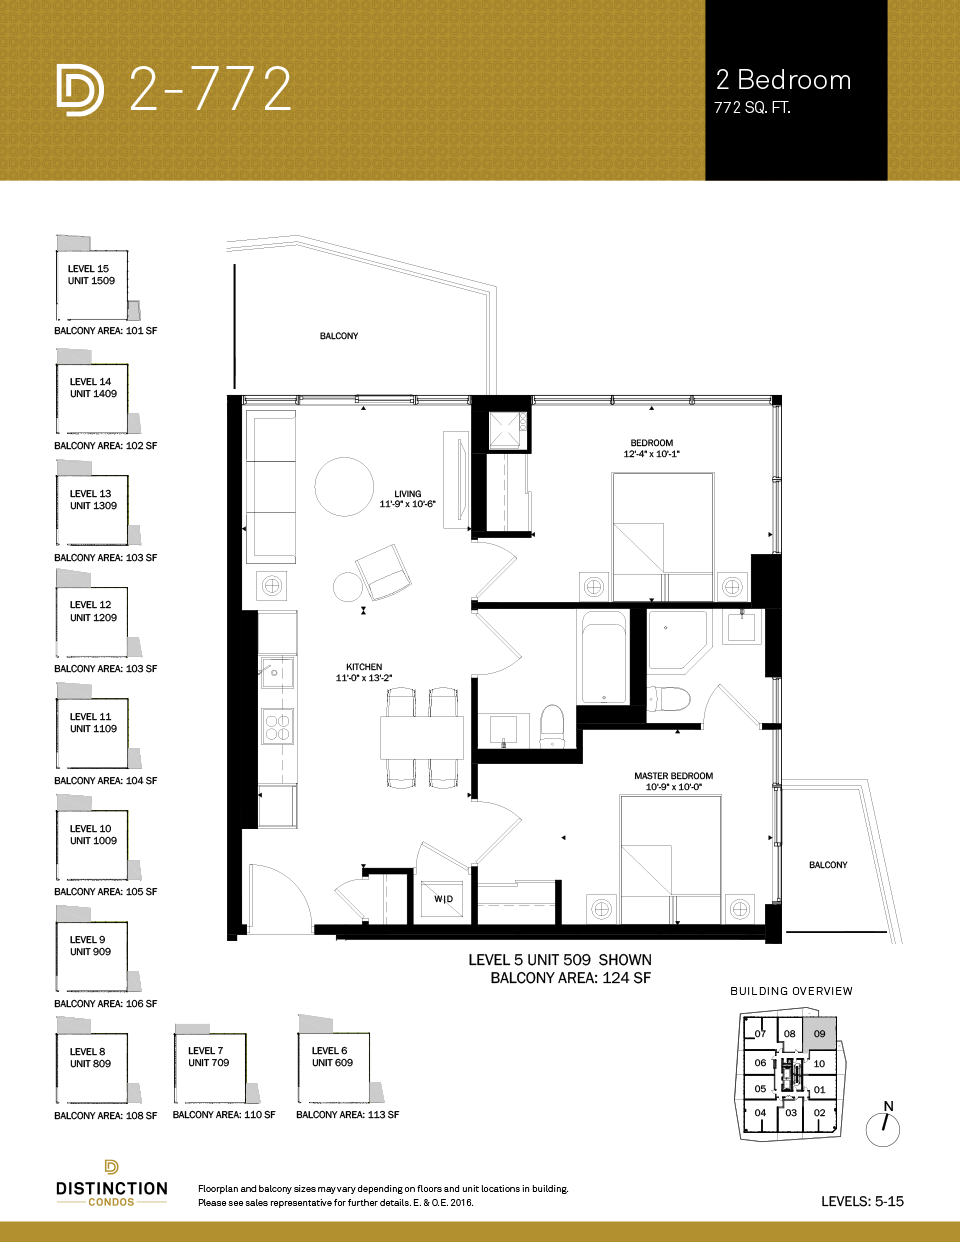 distinction condos floorplan 2-772